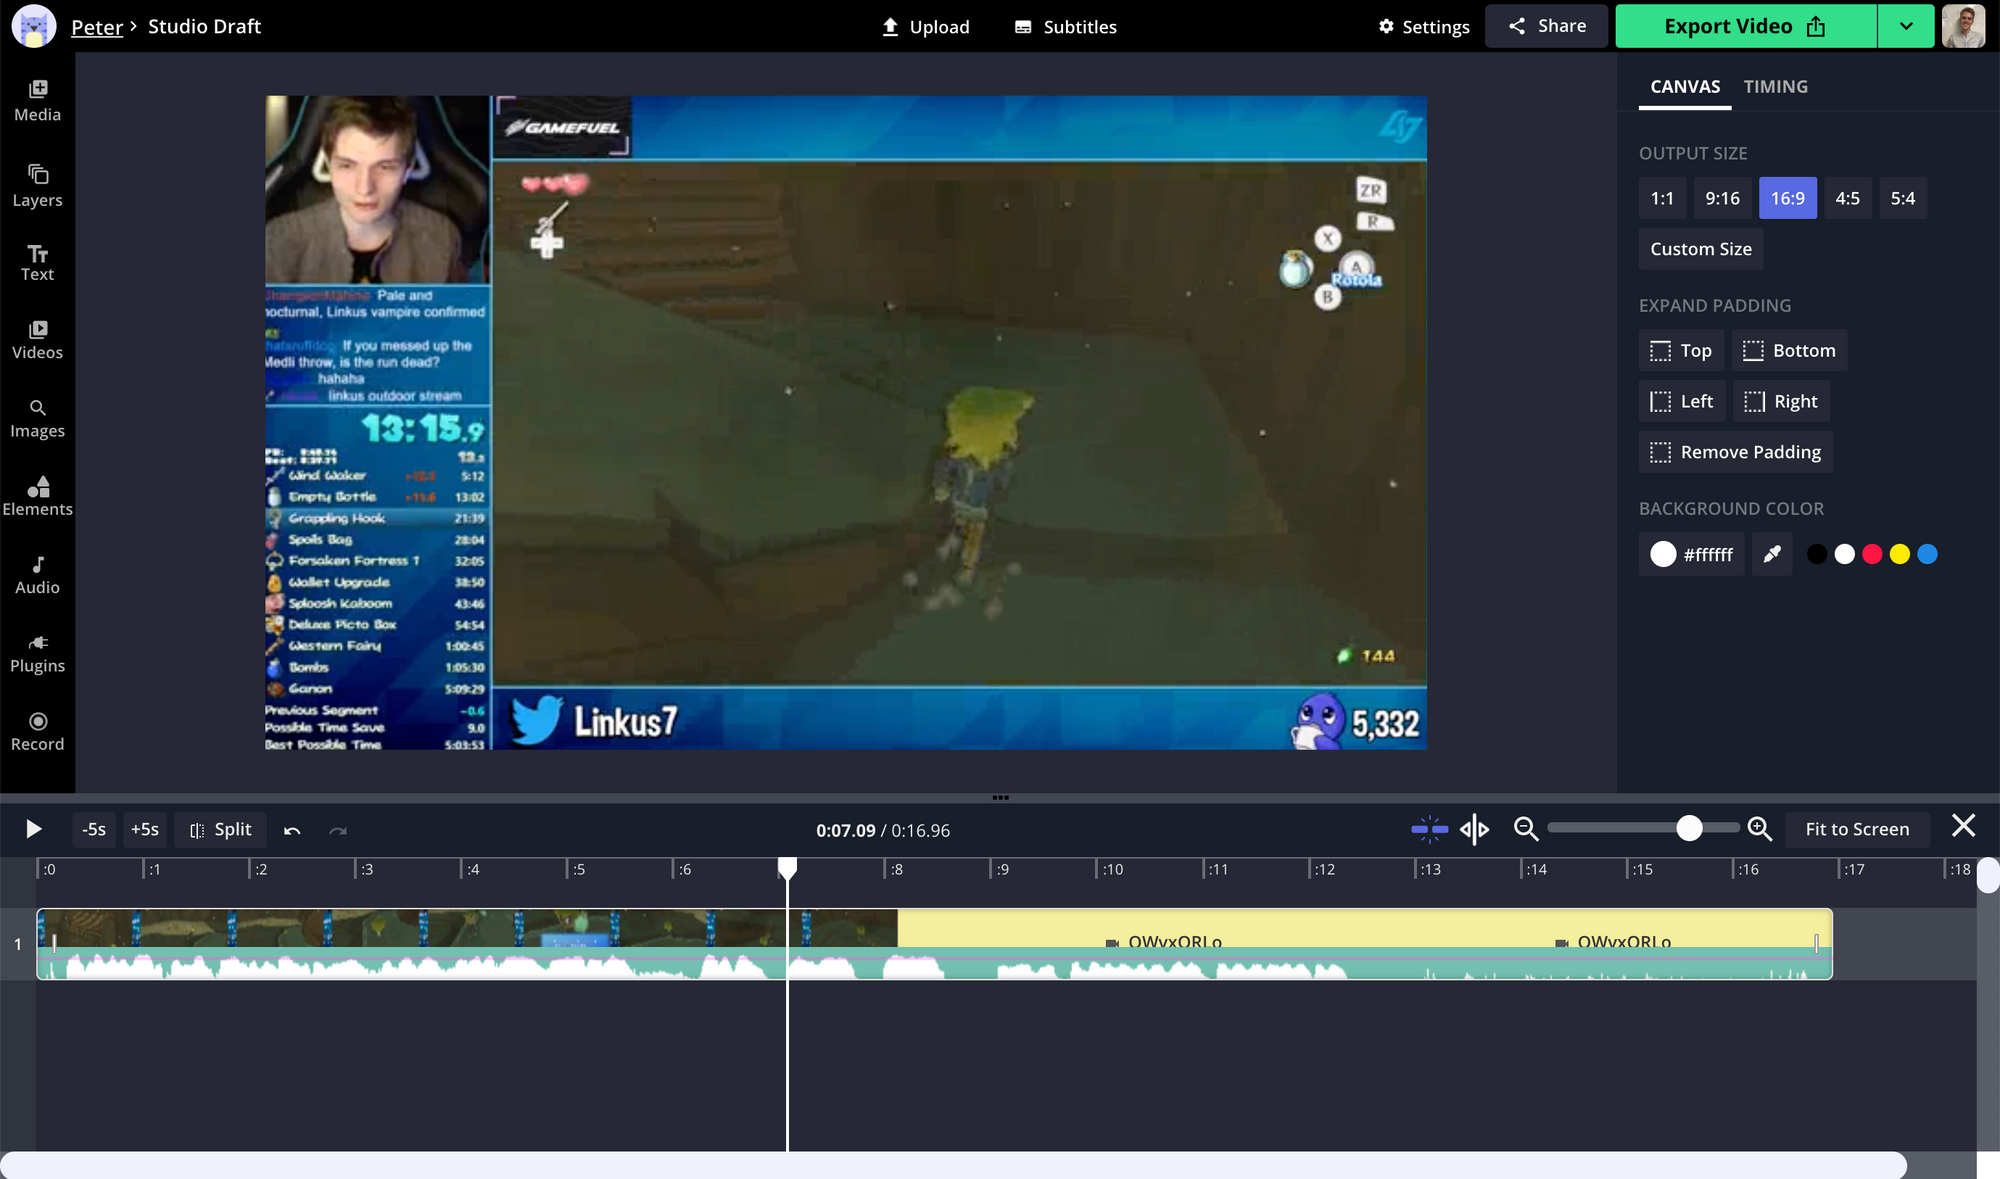 A screenshot of a Twitch Clip being edited in the Kapwing Studio.